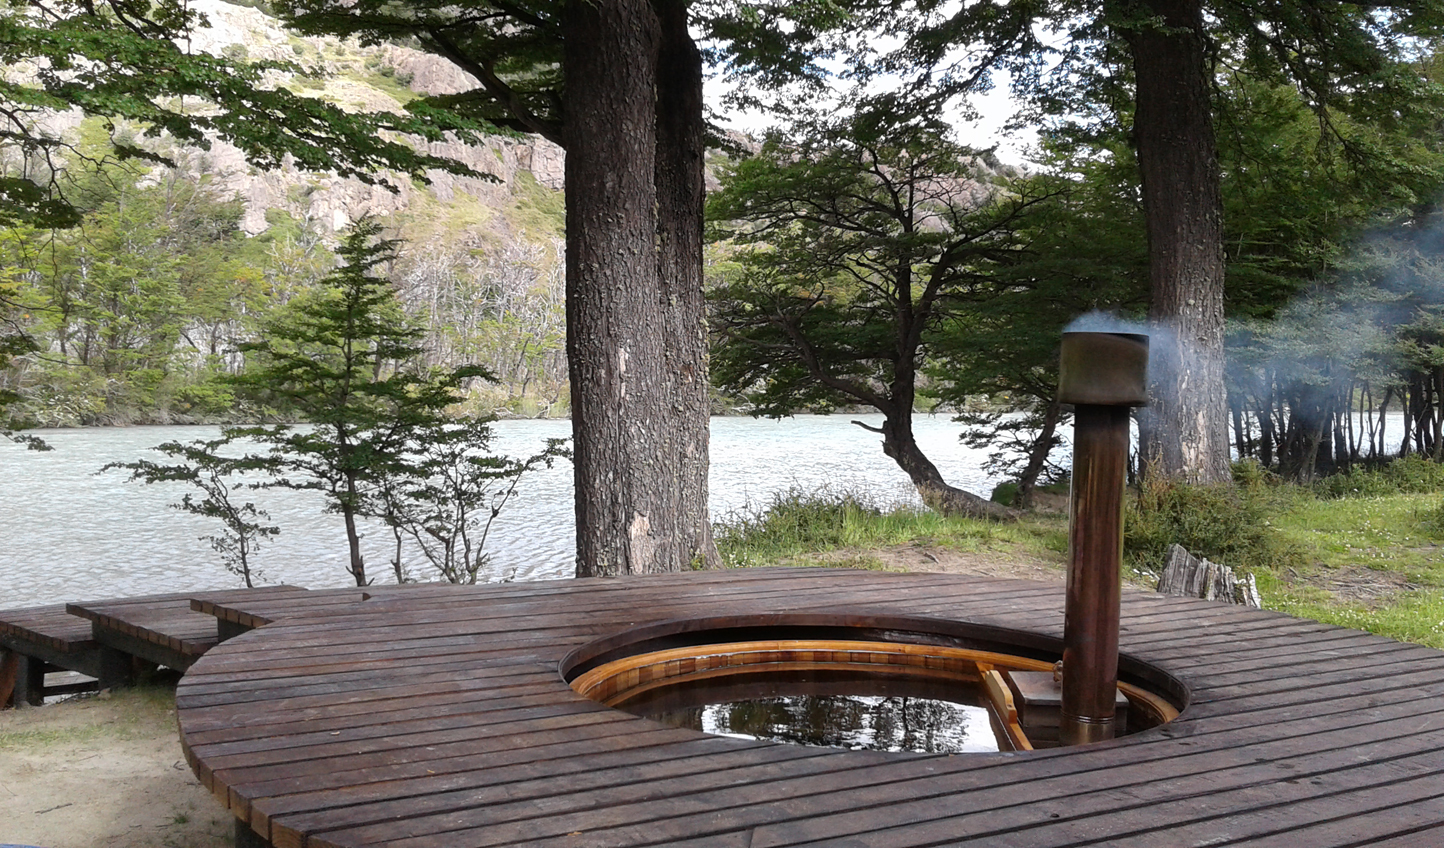 Soak up the views from the hot tub